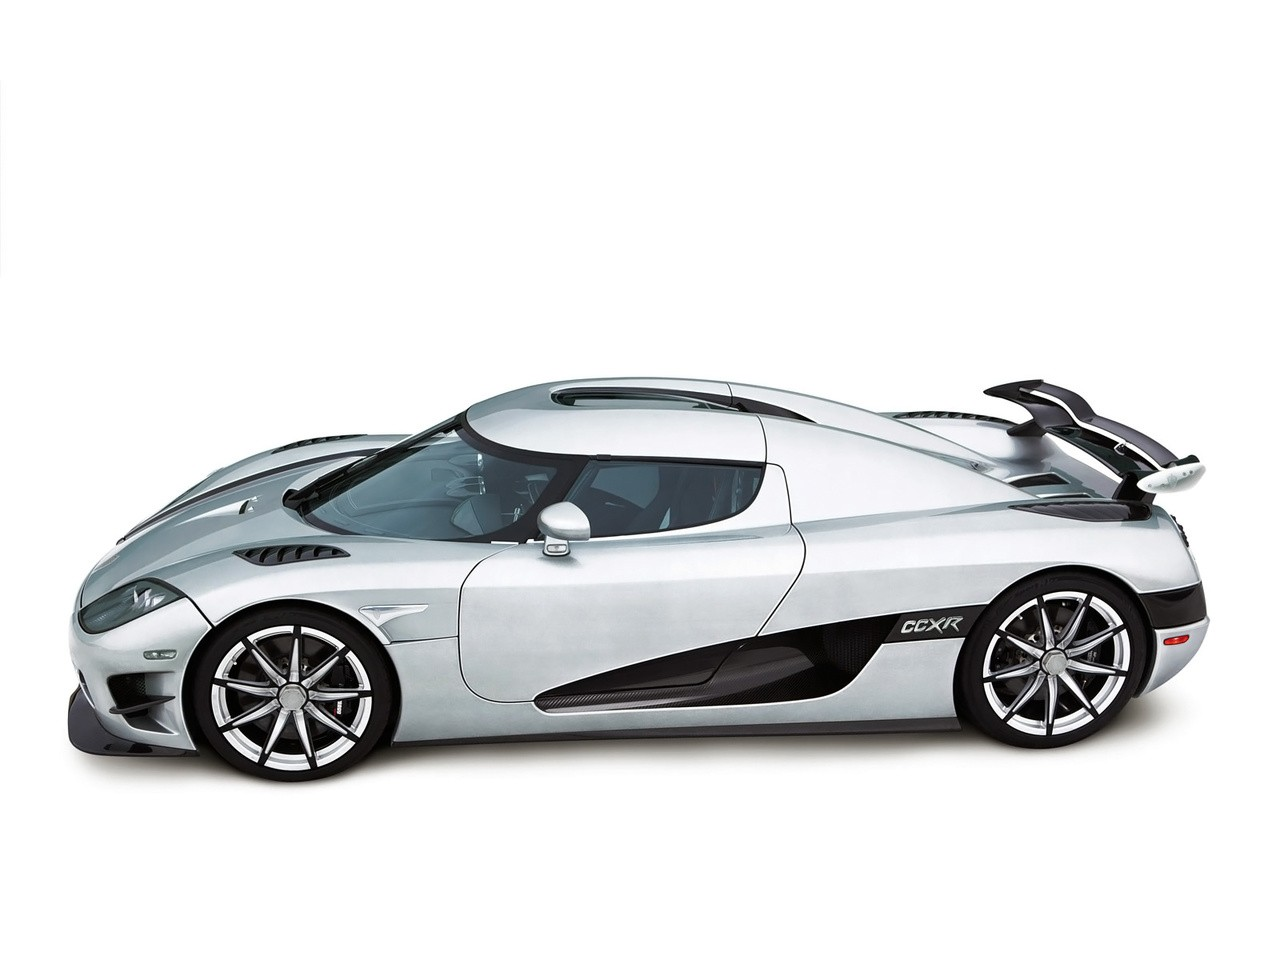 koenigsegg ccxr specs 2007 2008 2009 2010 autoevolution. Black Bedroom Furniture Sets. Home Design Ideas